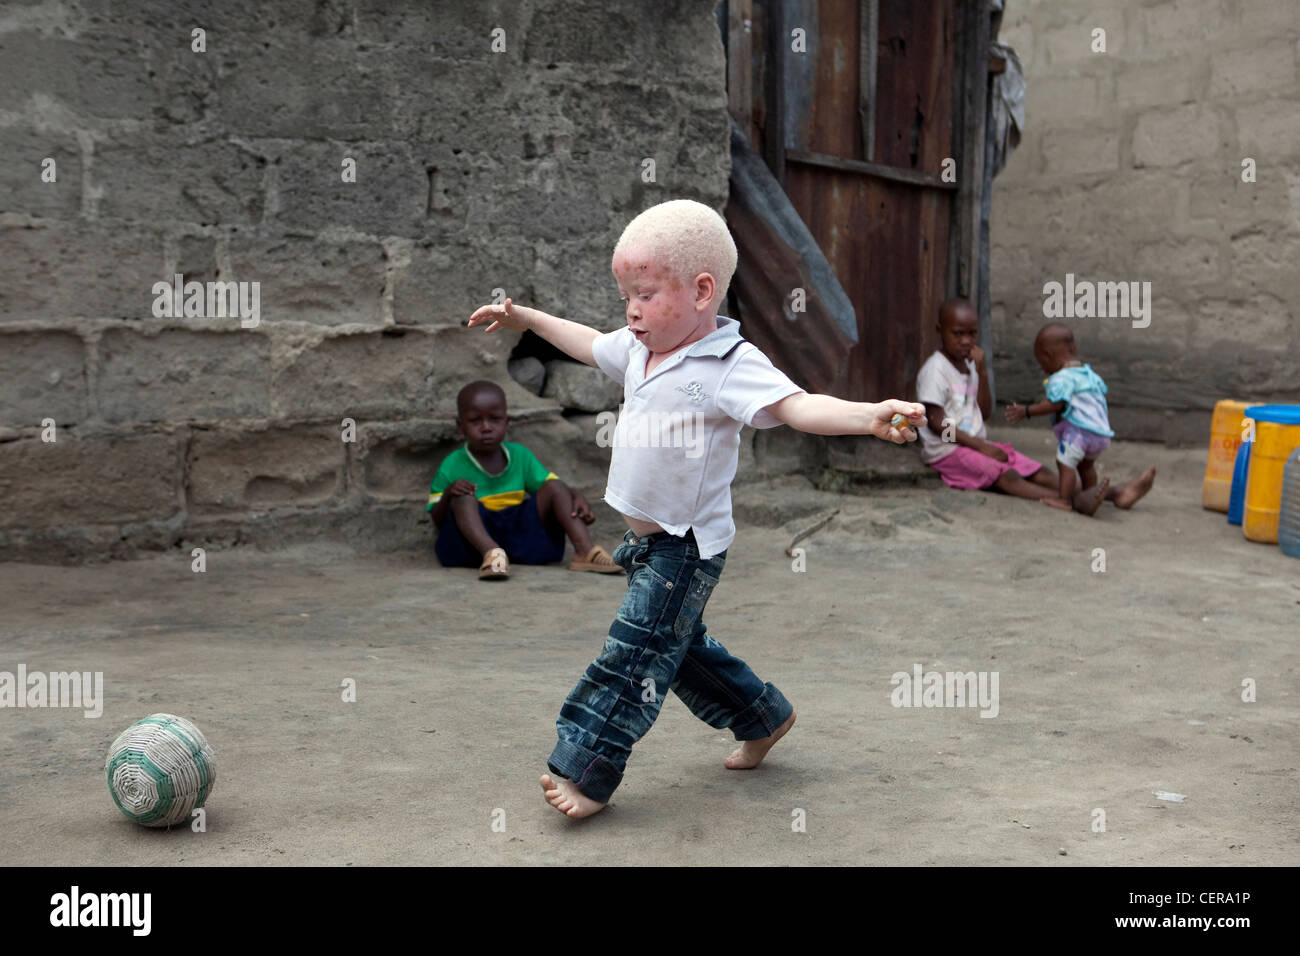 Albino children plays football in Tanzania Stock Photo